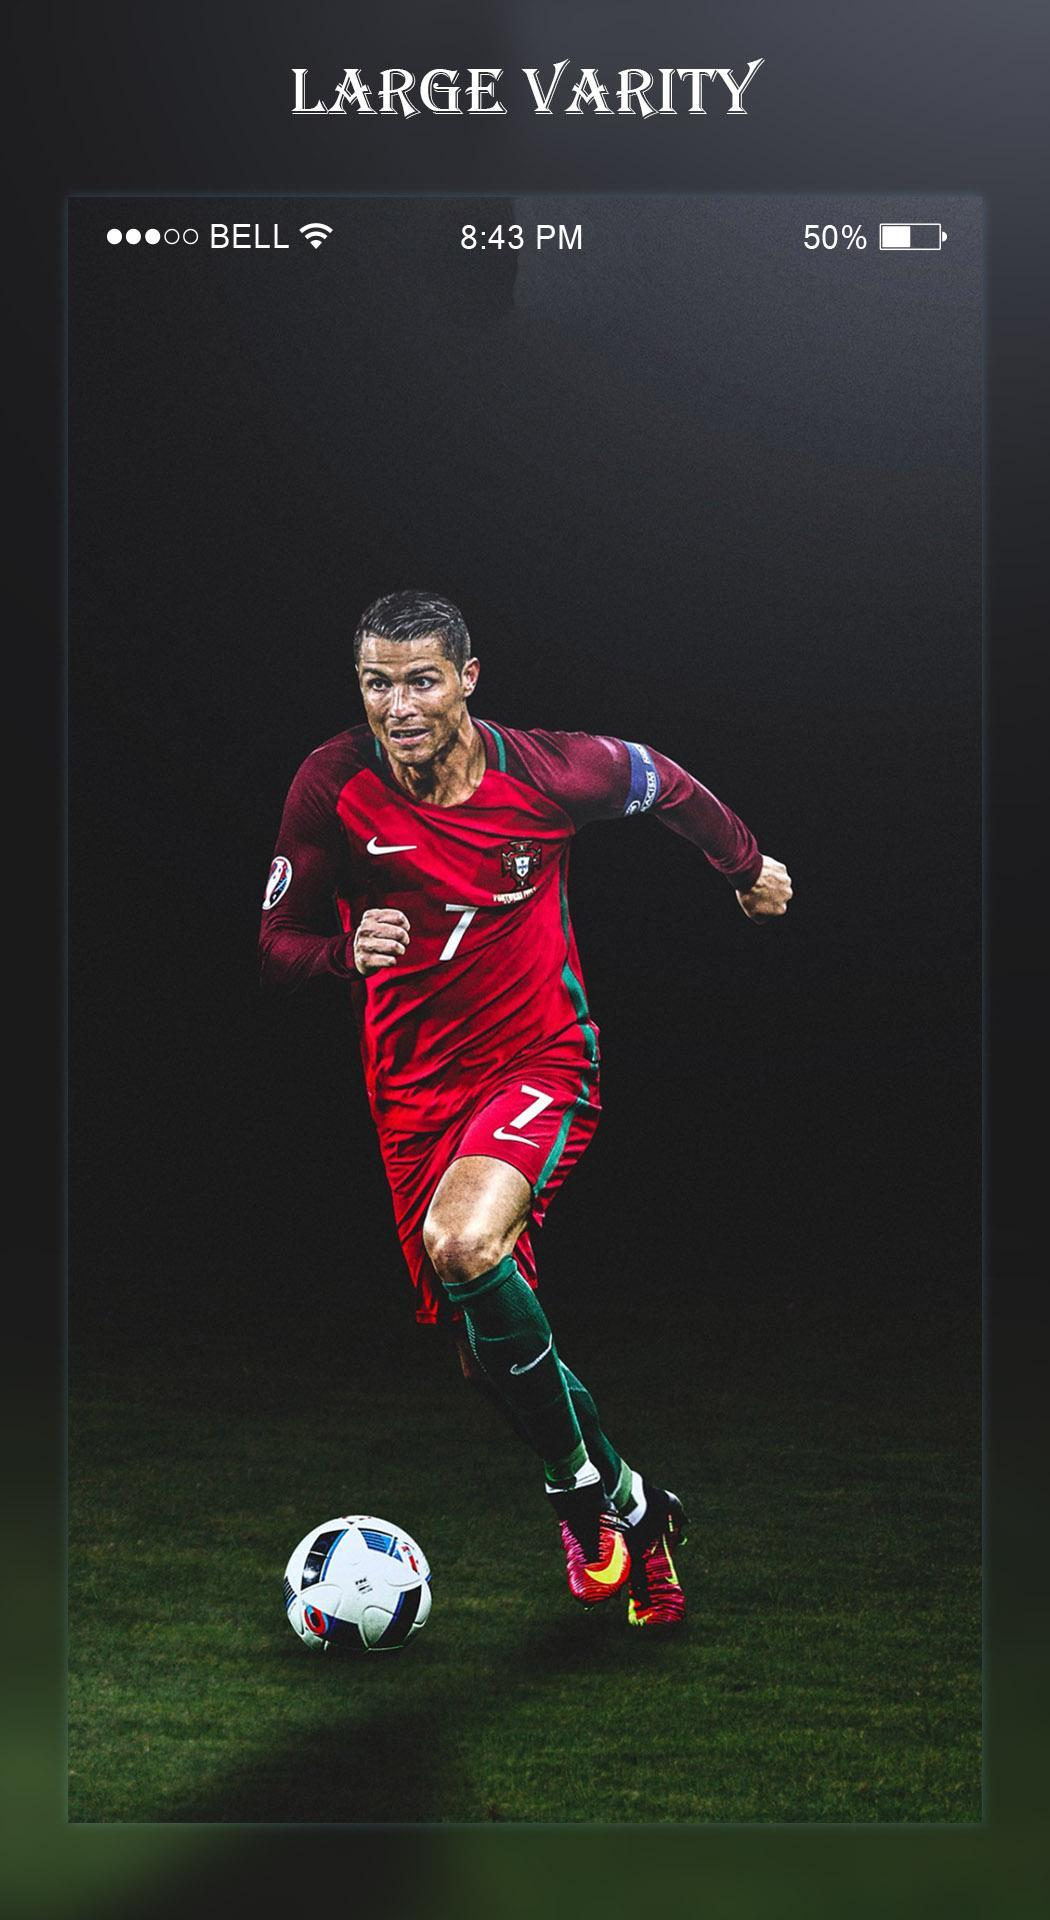 Football Wallpapers 4k Full Hd Backgrounds For Android Apk Download